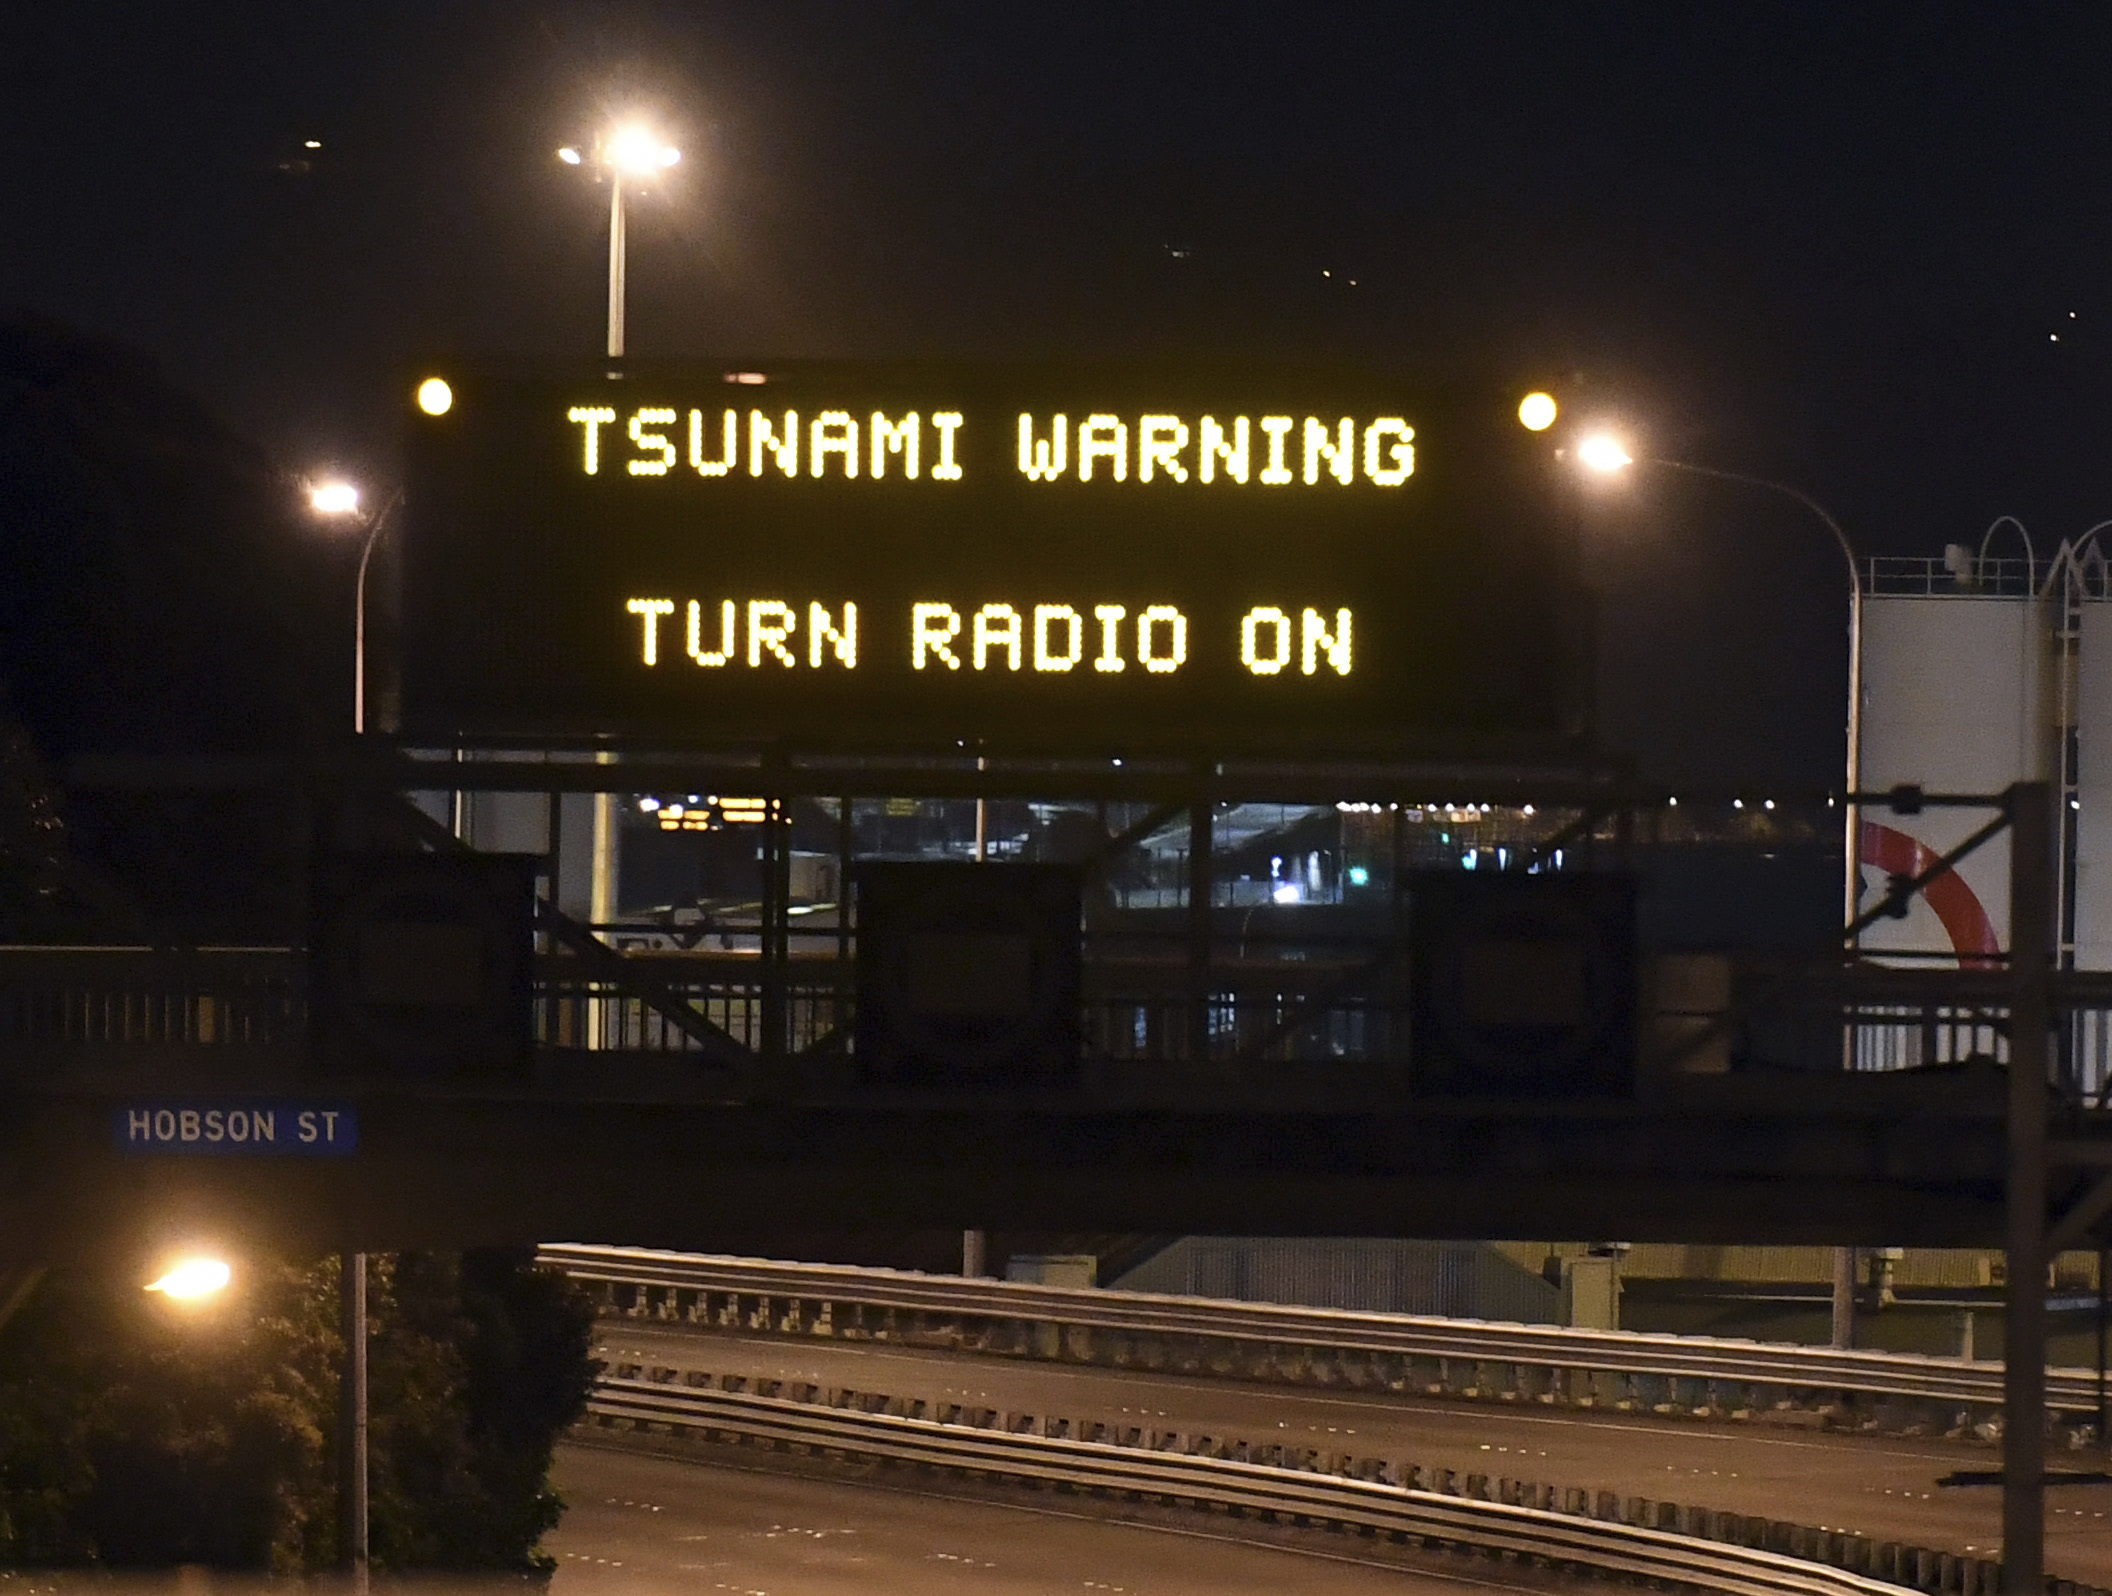 Motorway sign warning of Tsunami, in Wellington, Monday, Nov. 14, 2016, after a major earthquake struck New Zealand's south Island early Monday. A powerful earthquake struck in a mostly rural area close to the city of Christchurch but appeared to be more strongly felt in the capital, Wellington, more than 200 Km (120 miles) away.